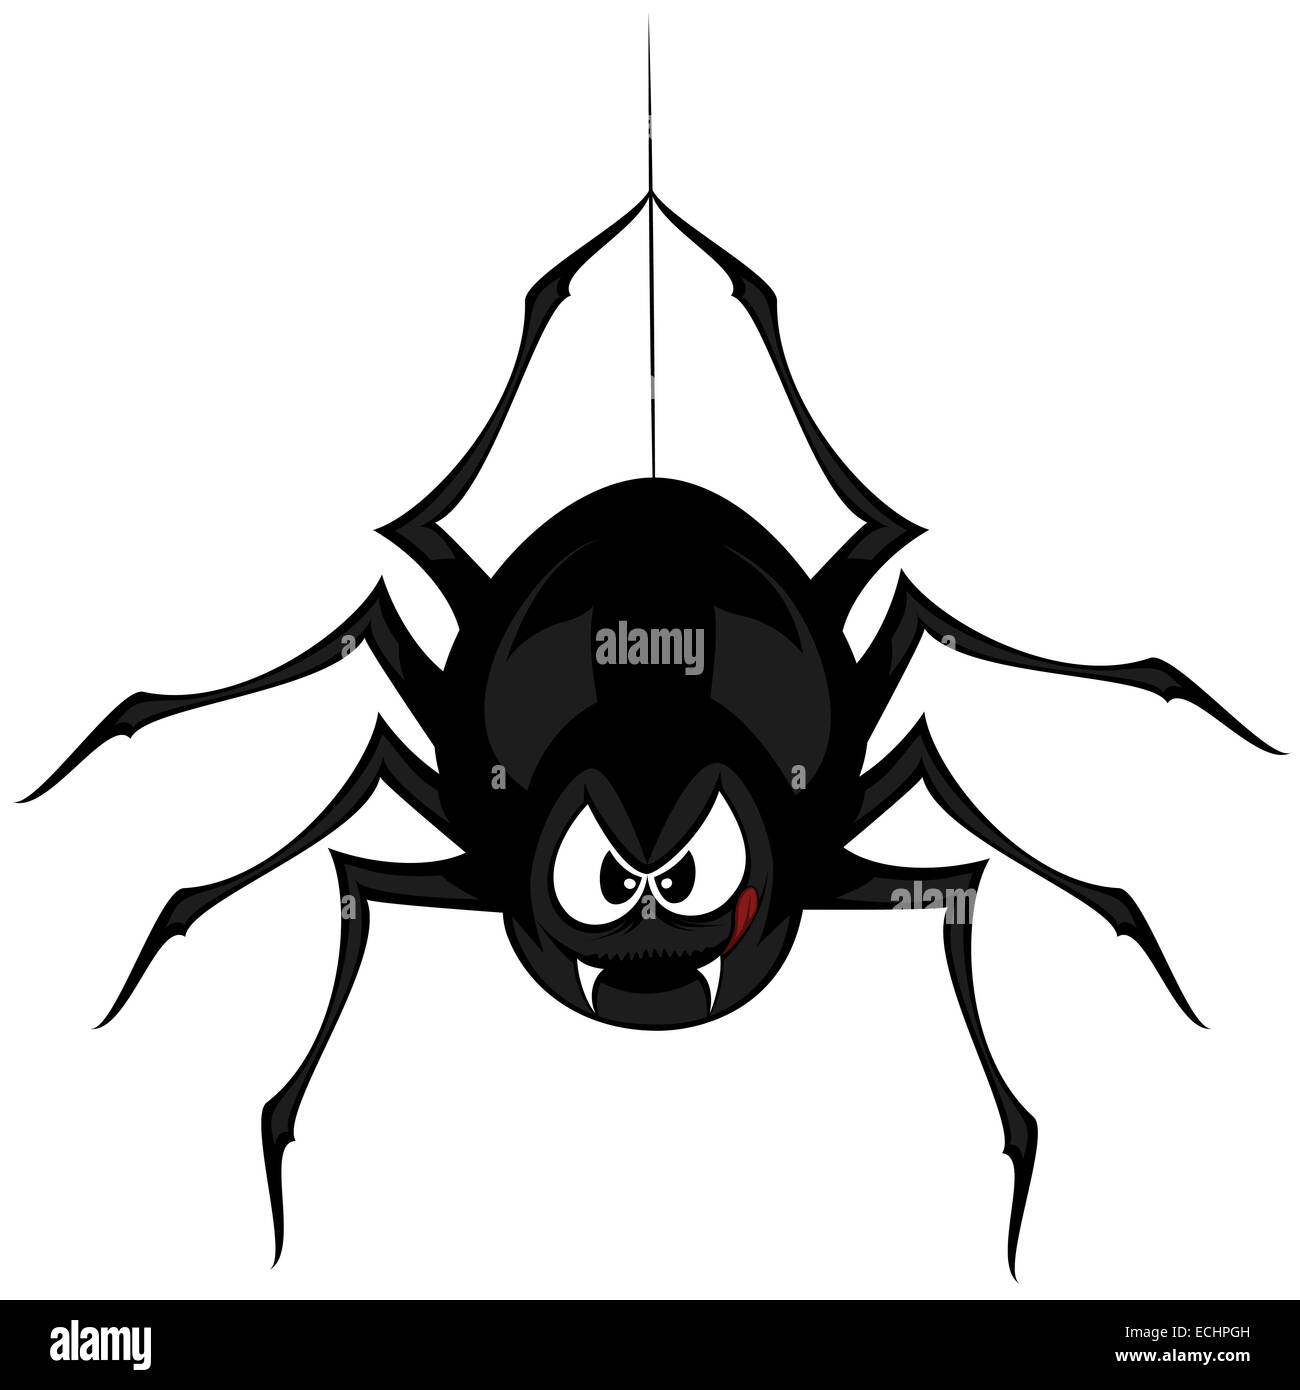 Funny freaky spider - a black cartoon-style spider is snarling and licking mouth with angry eyes while hanging on - Stock Image